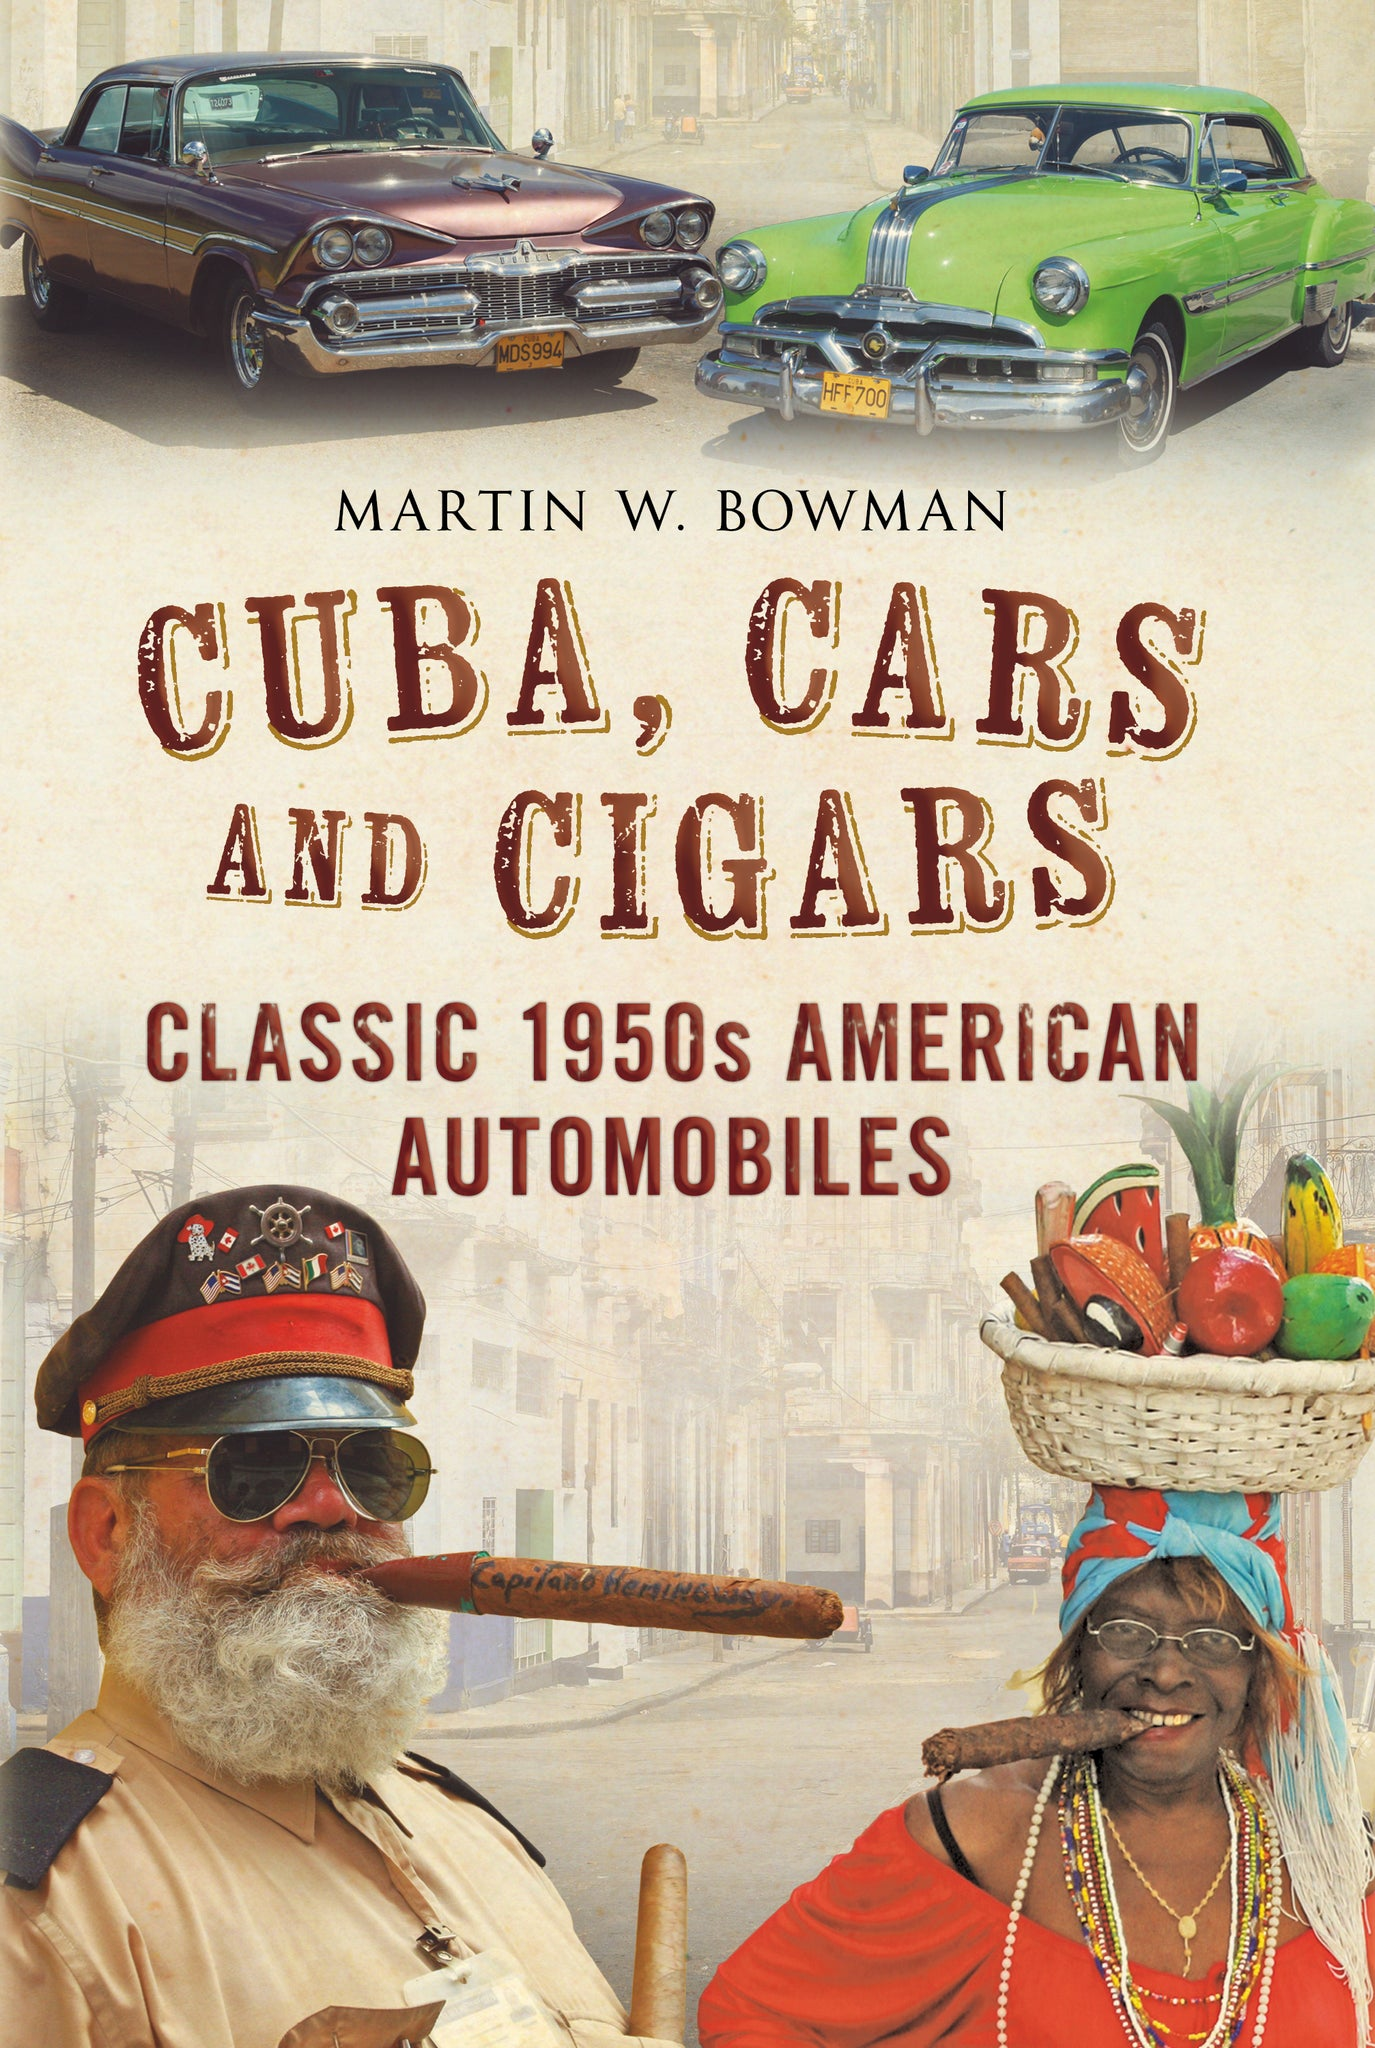 Cuba Cars and Cigars - available from Fonthill Media